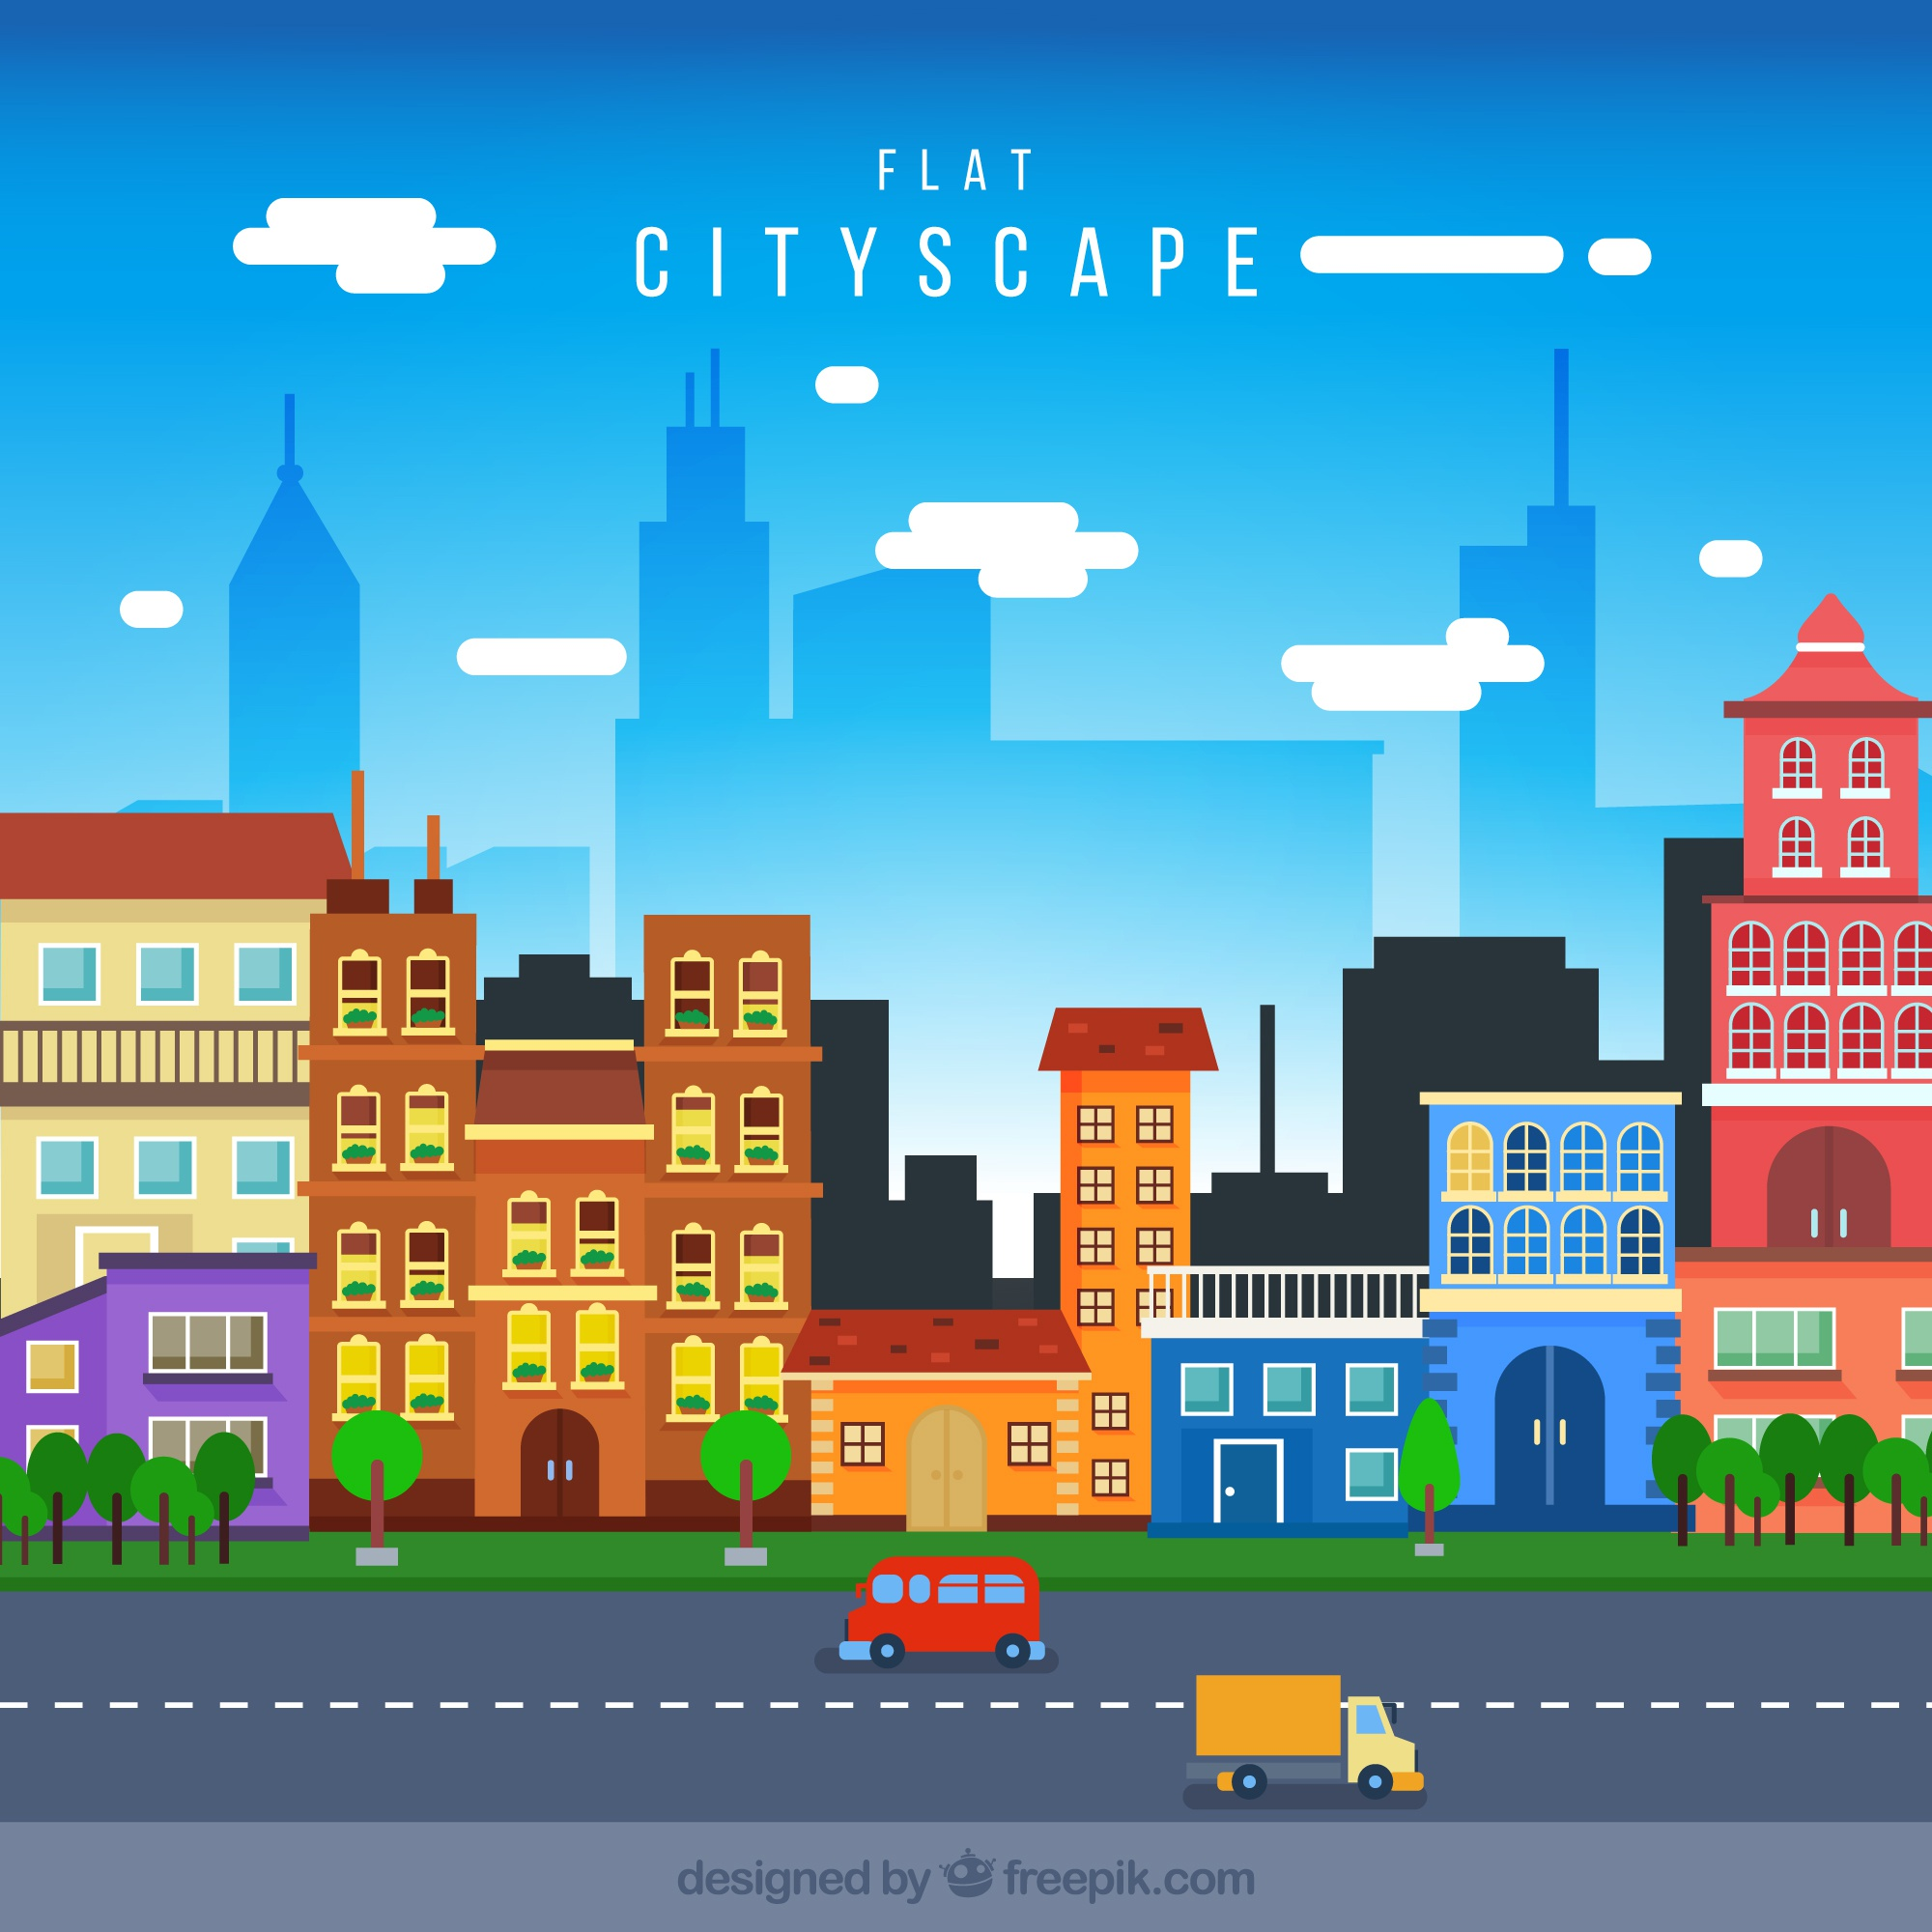 Cityscape with colored houses in flat design